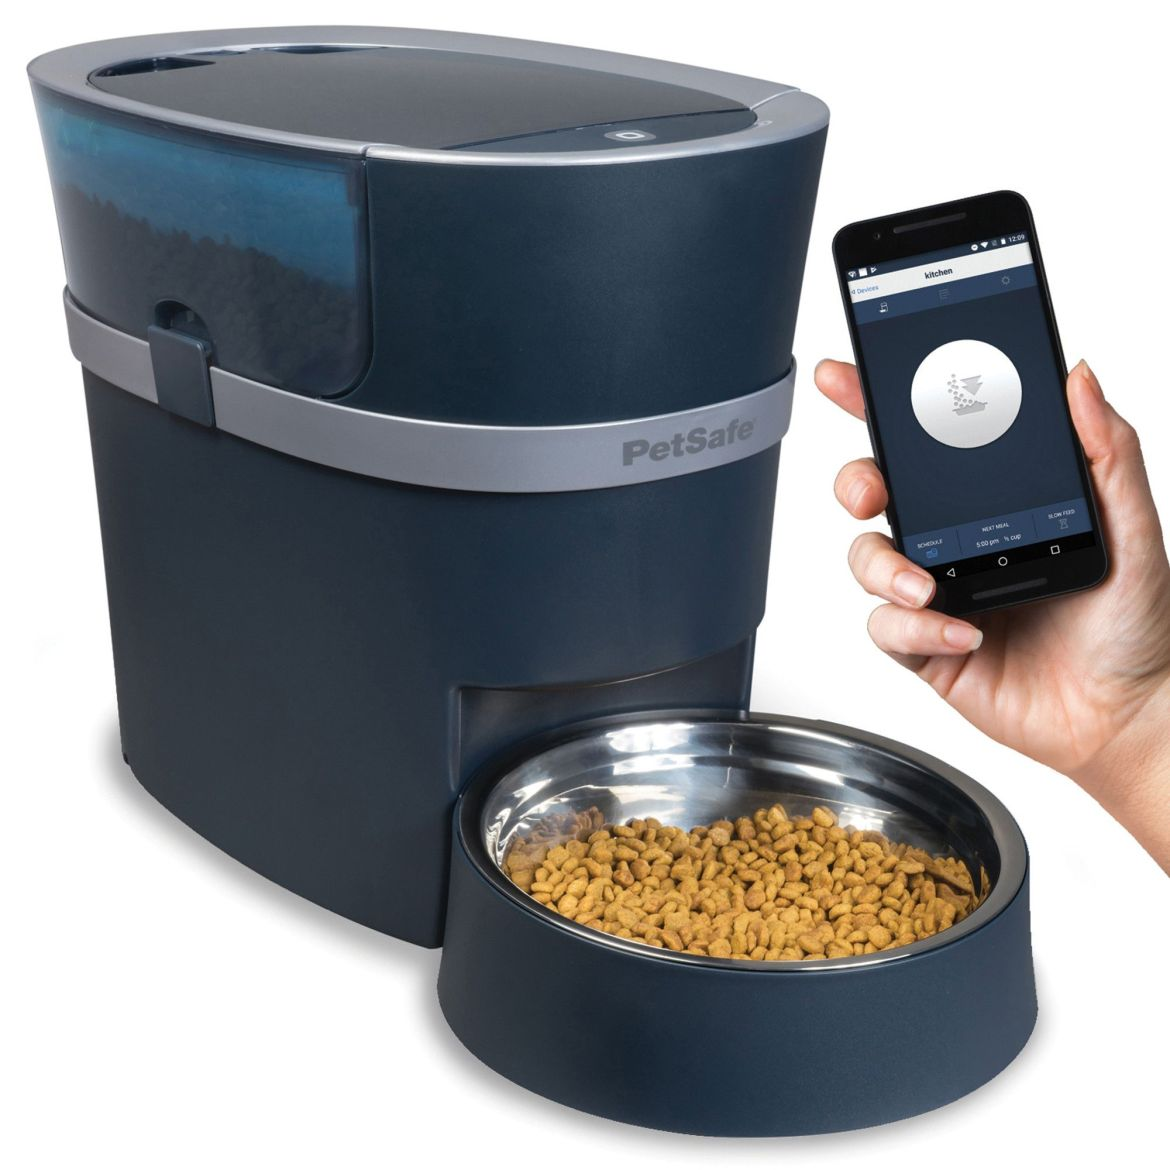 Got a cat during quarantine? Get an automatic feeder on sale before vacation.